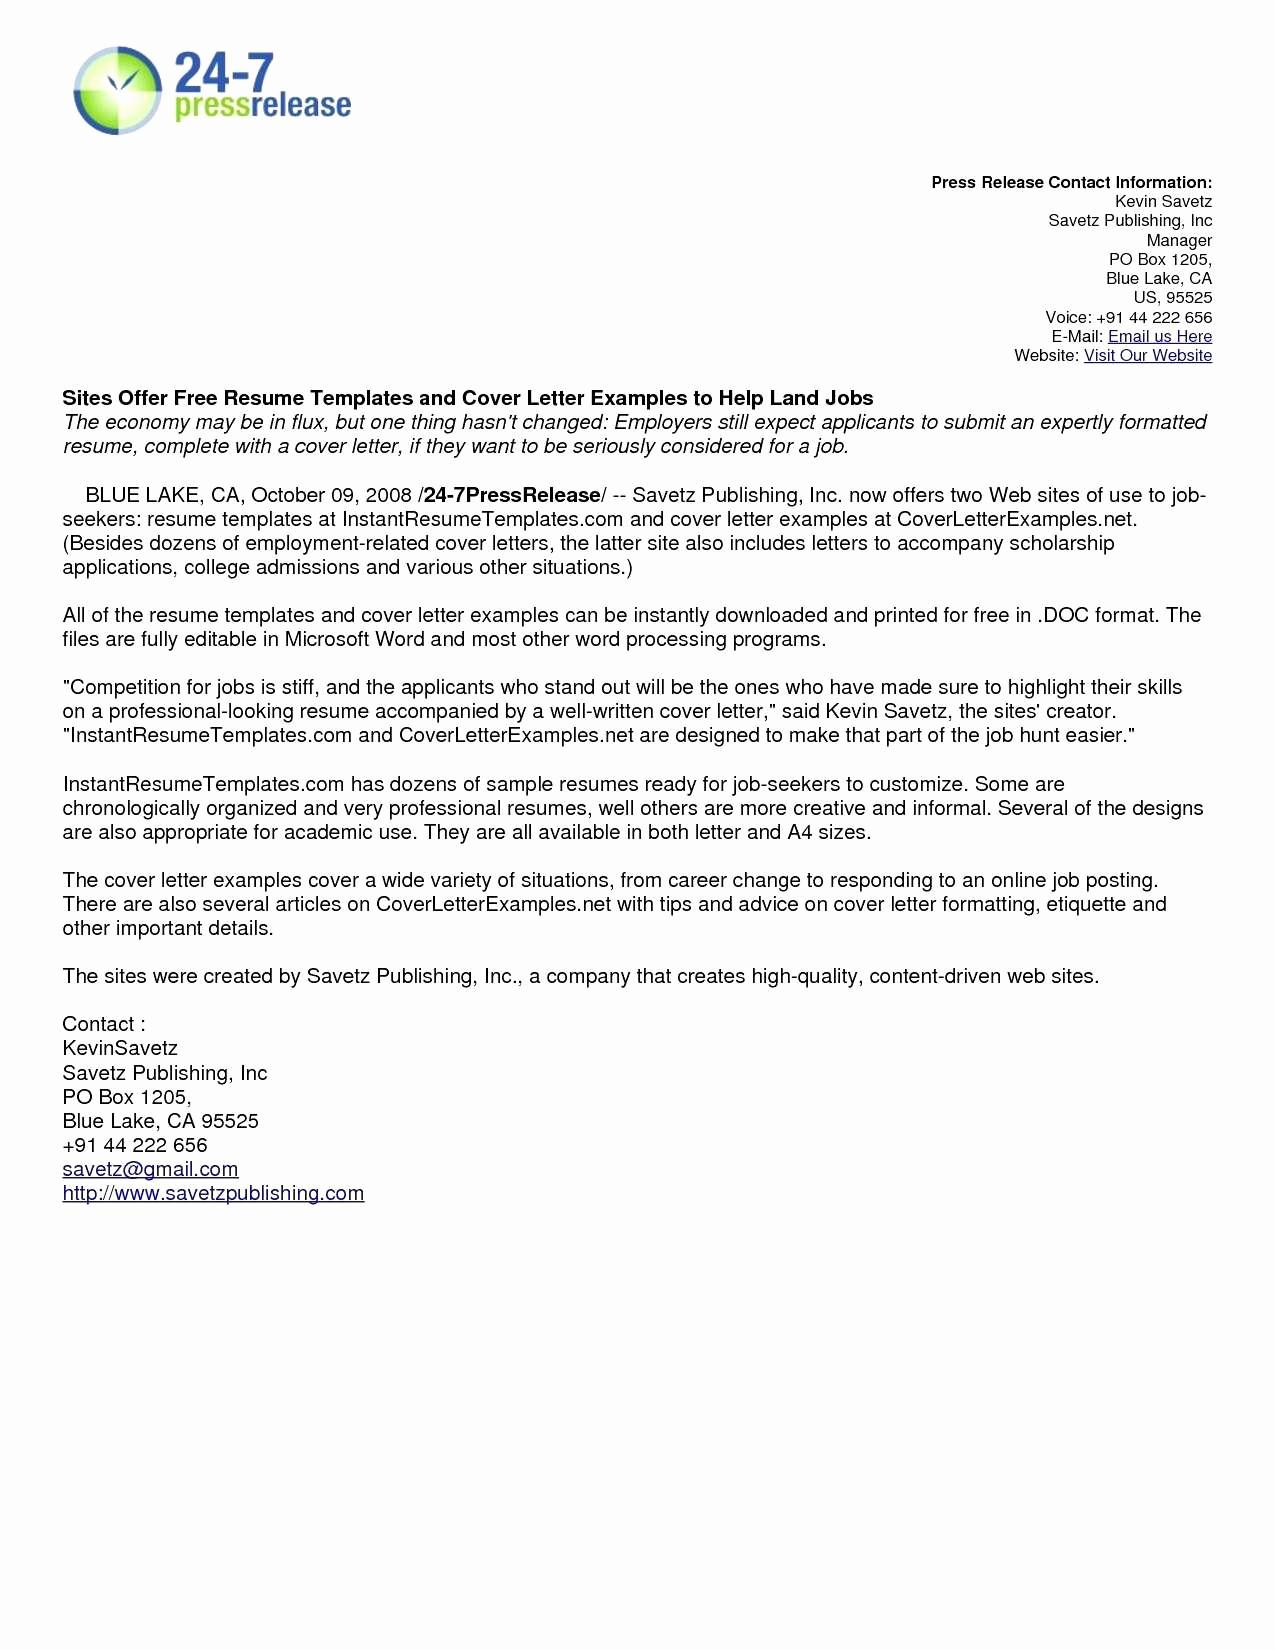 96 Relocation Cover Letter Template